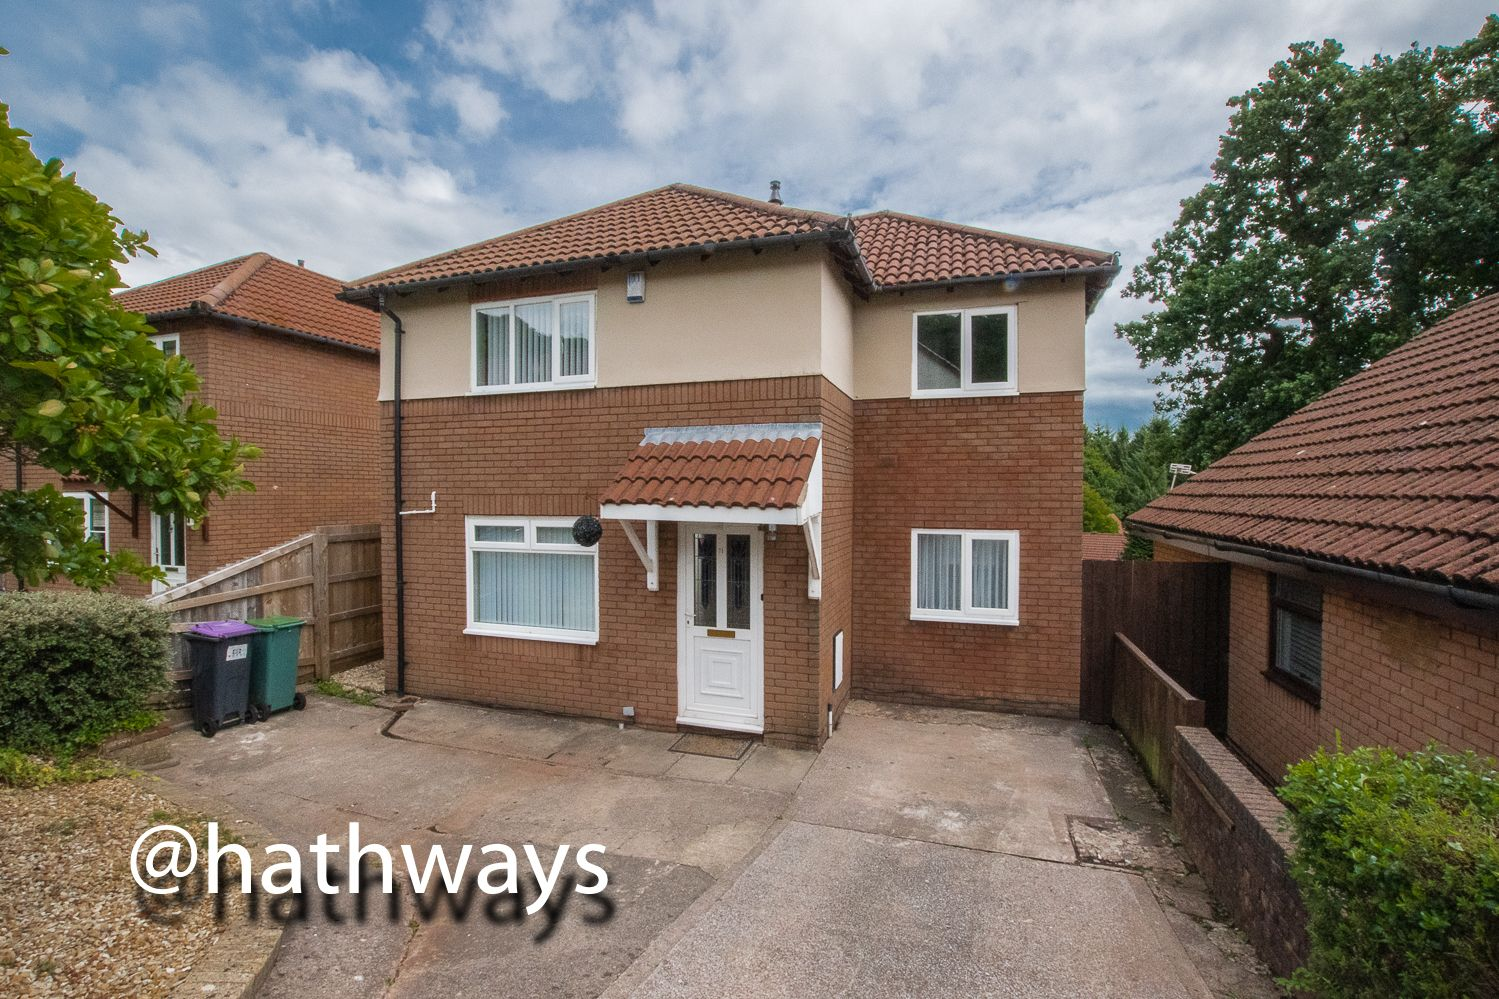 4 bed house to rent in Daffodil Court, NP44